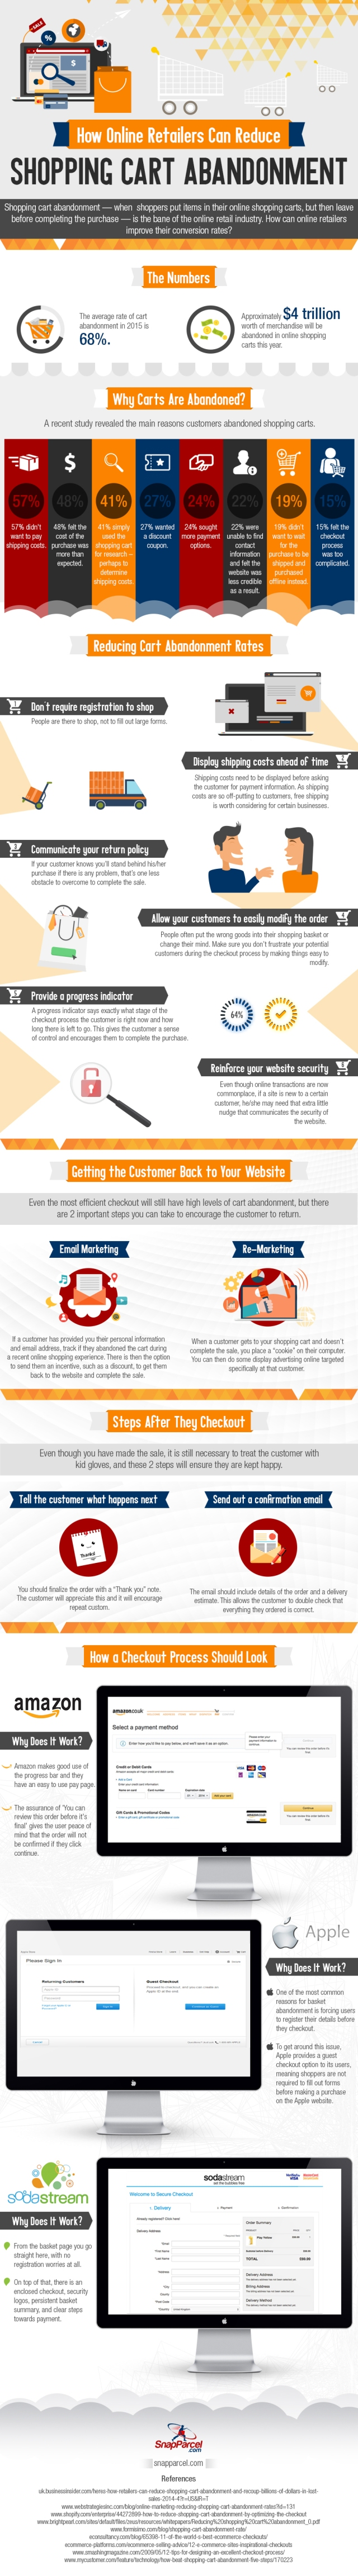 8-reasons-online-shoppers-abandon-their-carts-and-how-to-fix-it